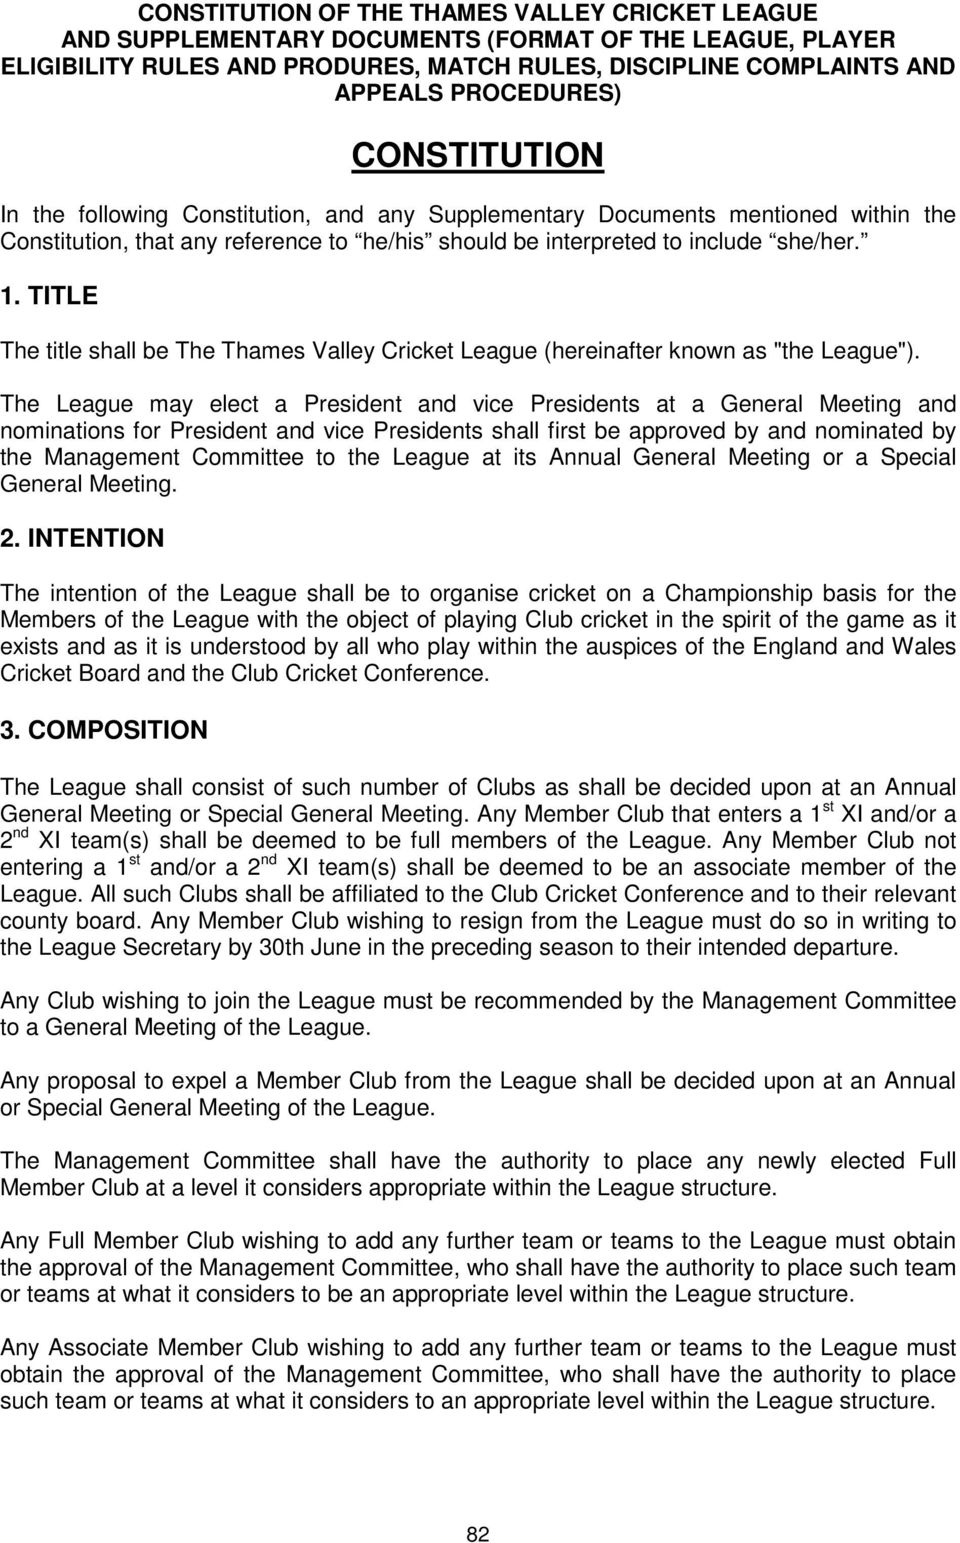 "TITLE The title shall be The Thames Valley Cricket League (hereinafter known as ""the League"")."